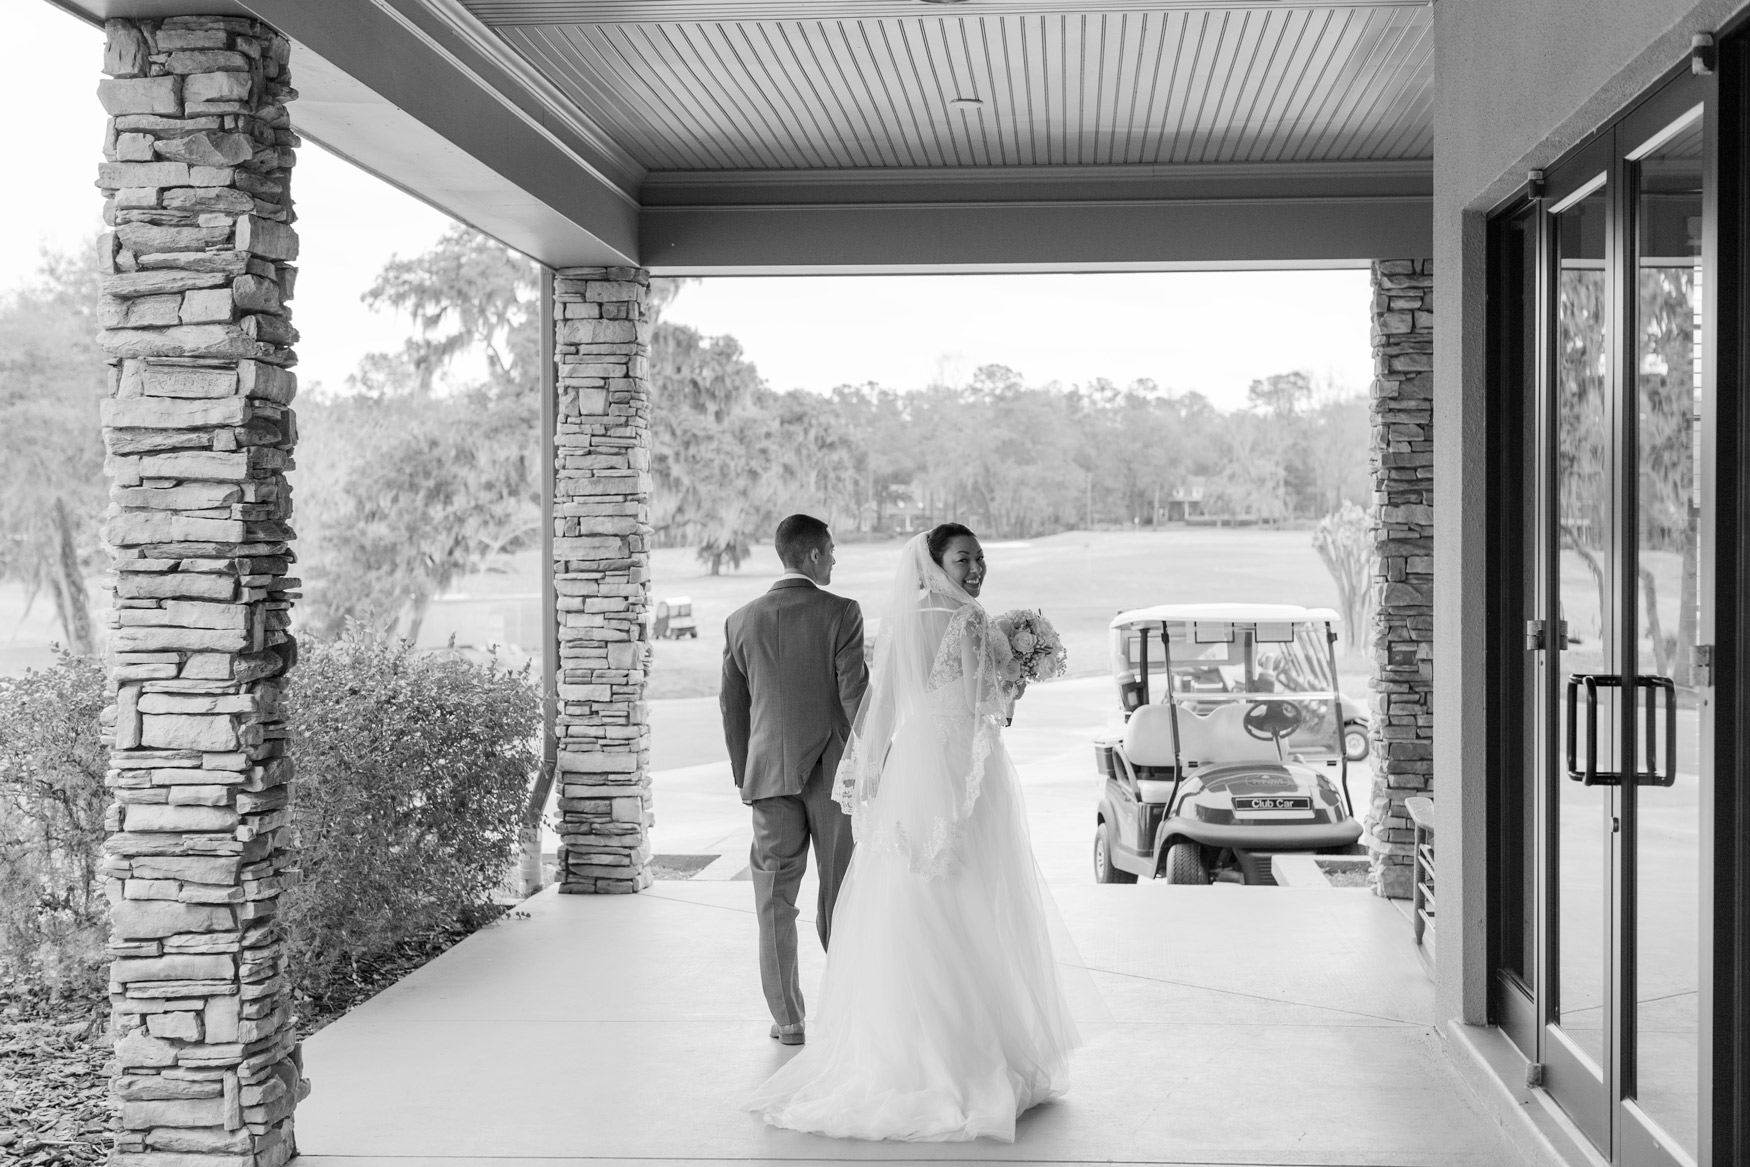 ©2018_BlueSleevePhotography_ Summer+Brian_Wedding-020318_00176.jpg